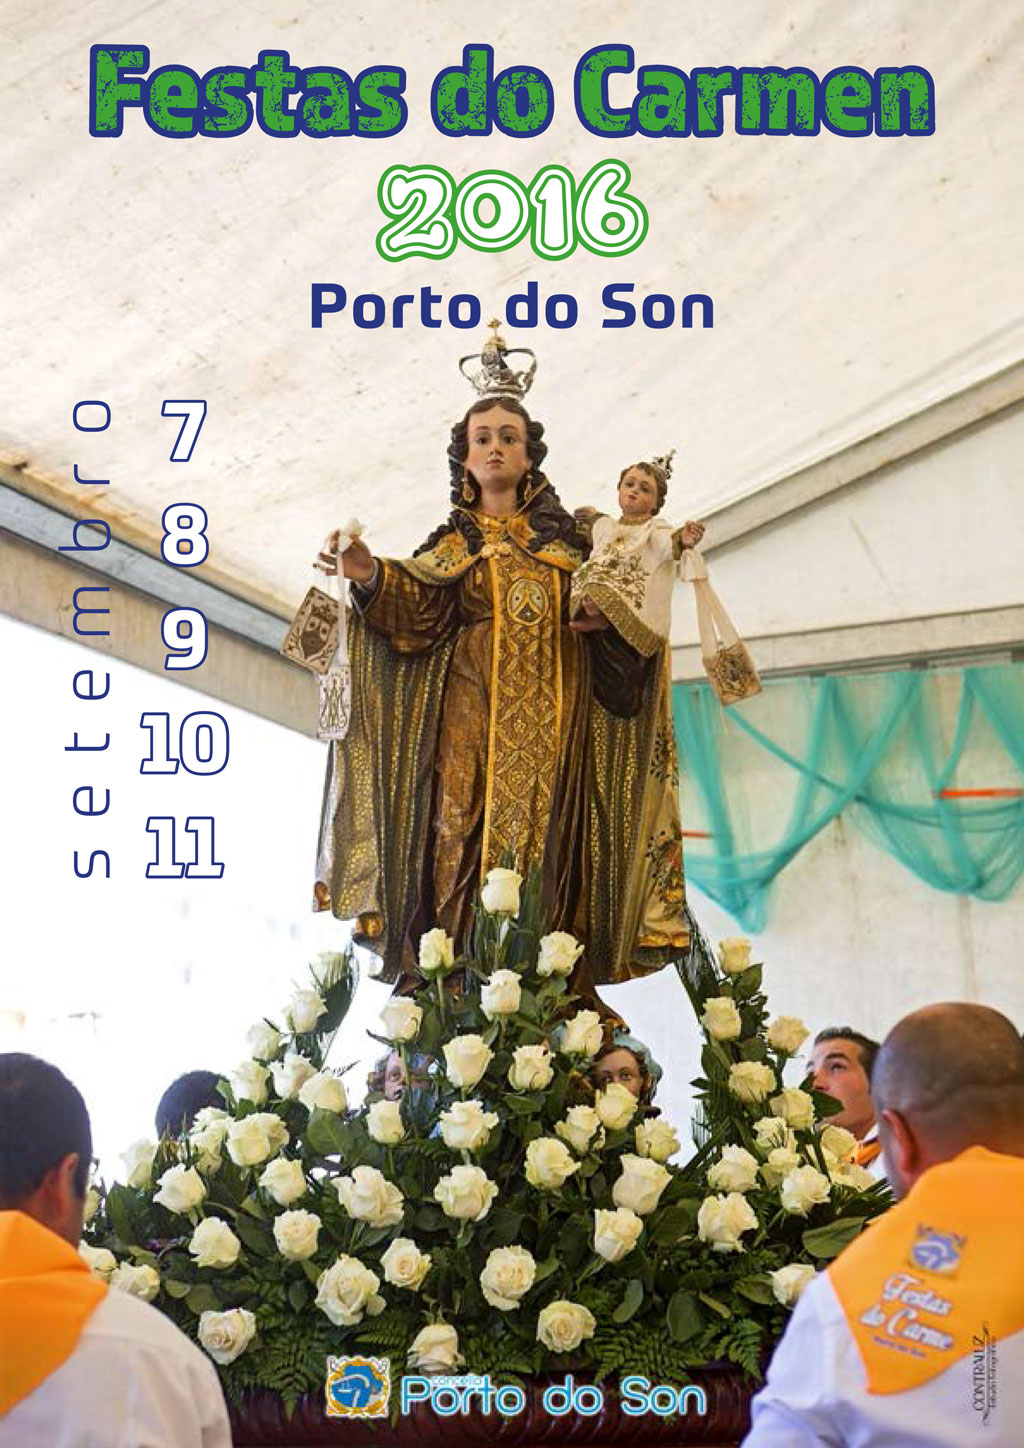 festas-do-carmen-de-porto-do-son-2016